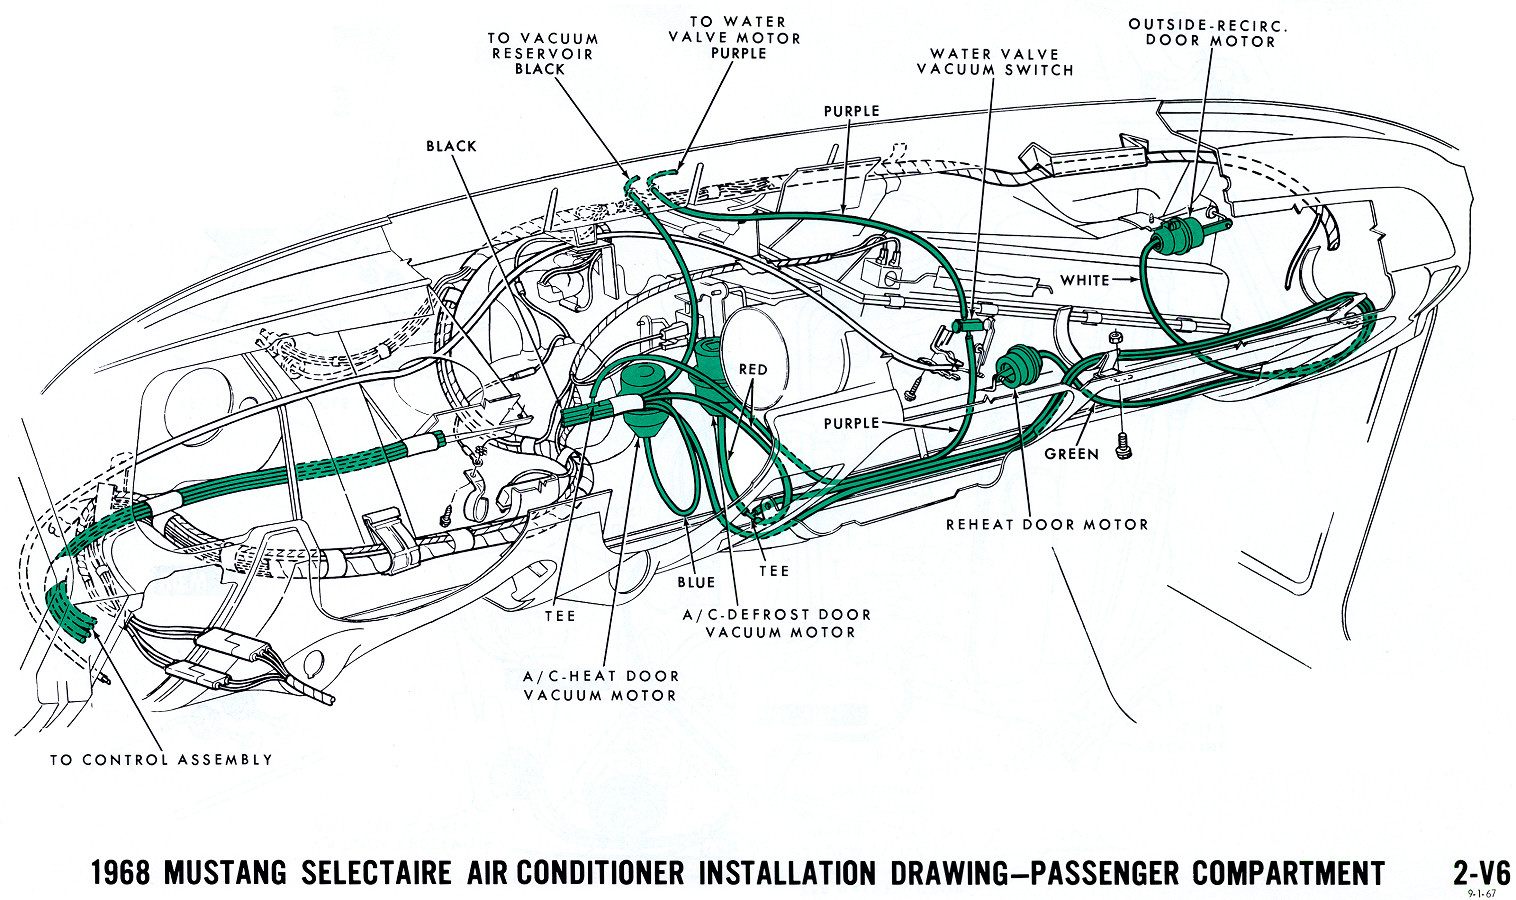 67 Mustang Fuse Box Location Wiring Library Block Diagram For 1967 Images Gallery 1968 Diagrams And Vacuum Schematics